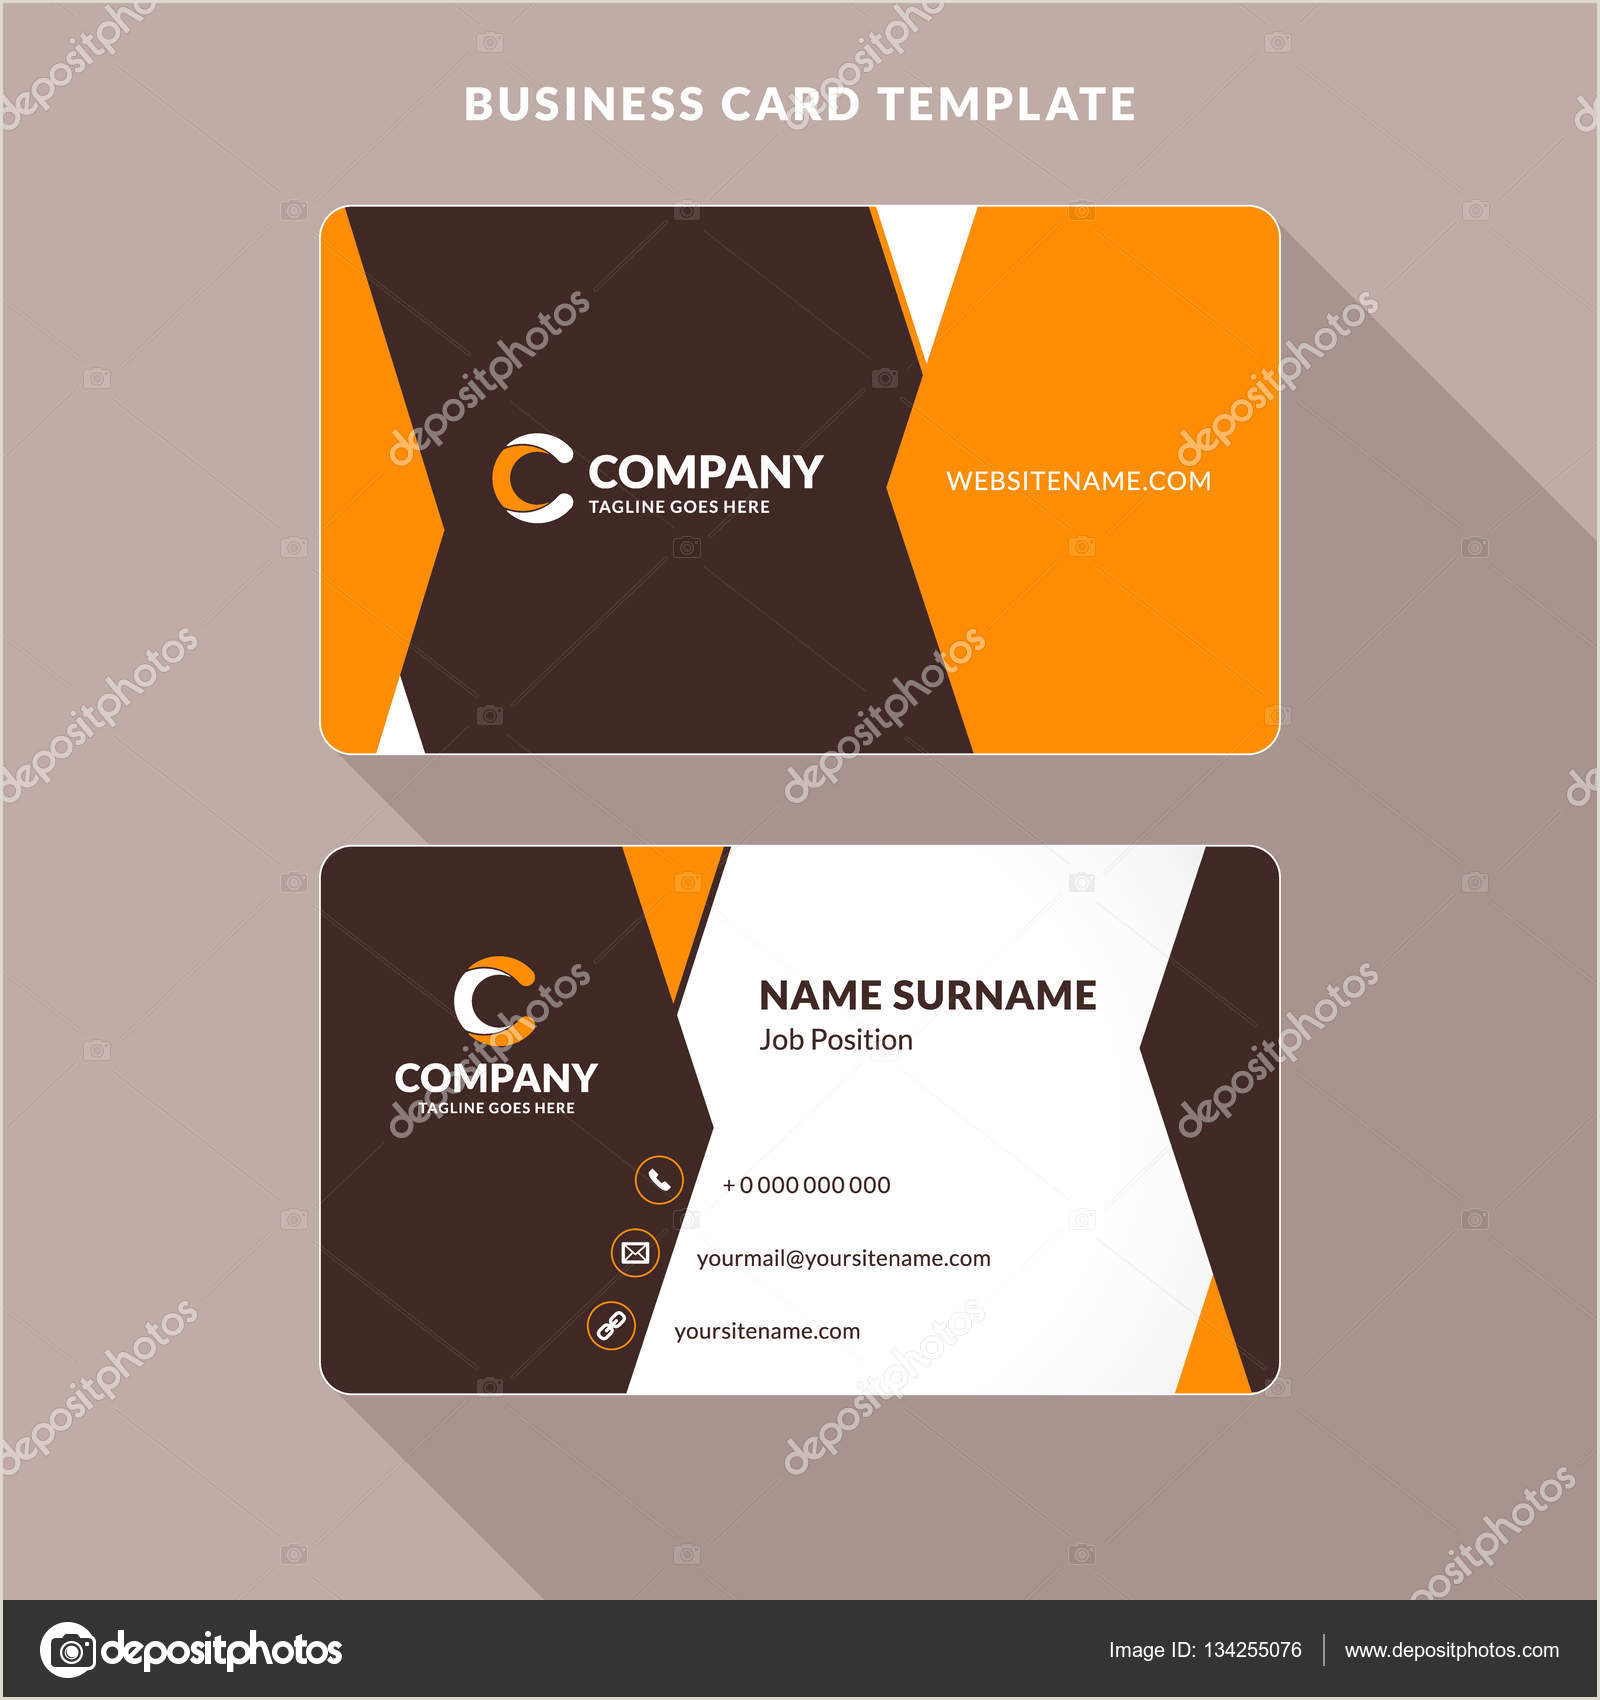 Unique Sticker Business Cards Creative And Clean Double Sided Business Card Template Orange And Brown Colors Flat Design Vector Illustration Stationery Design